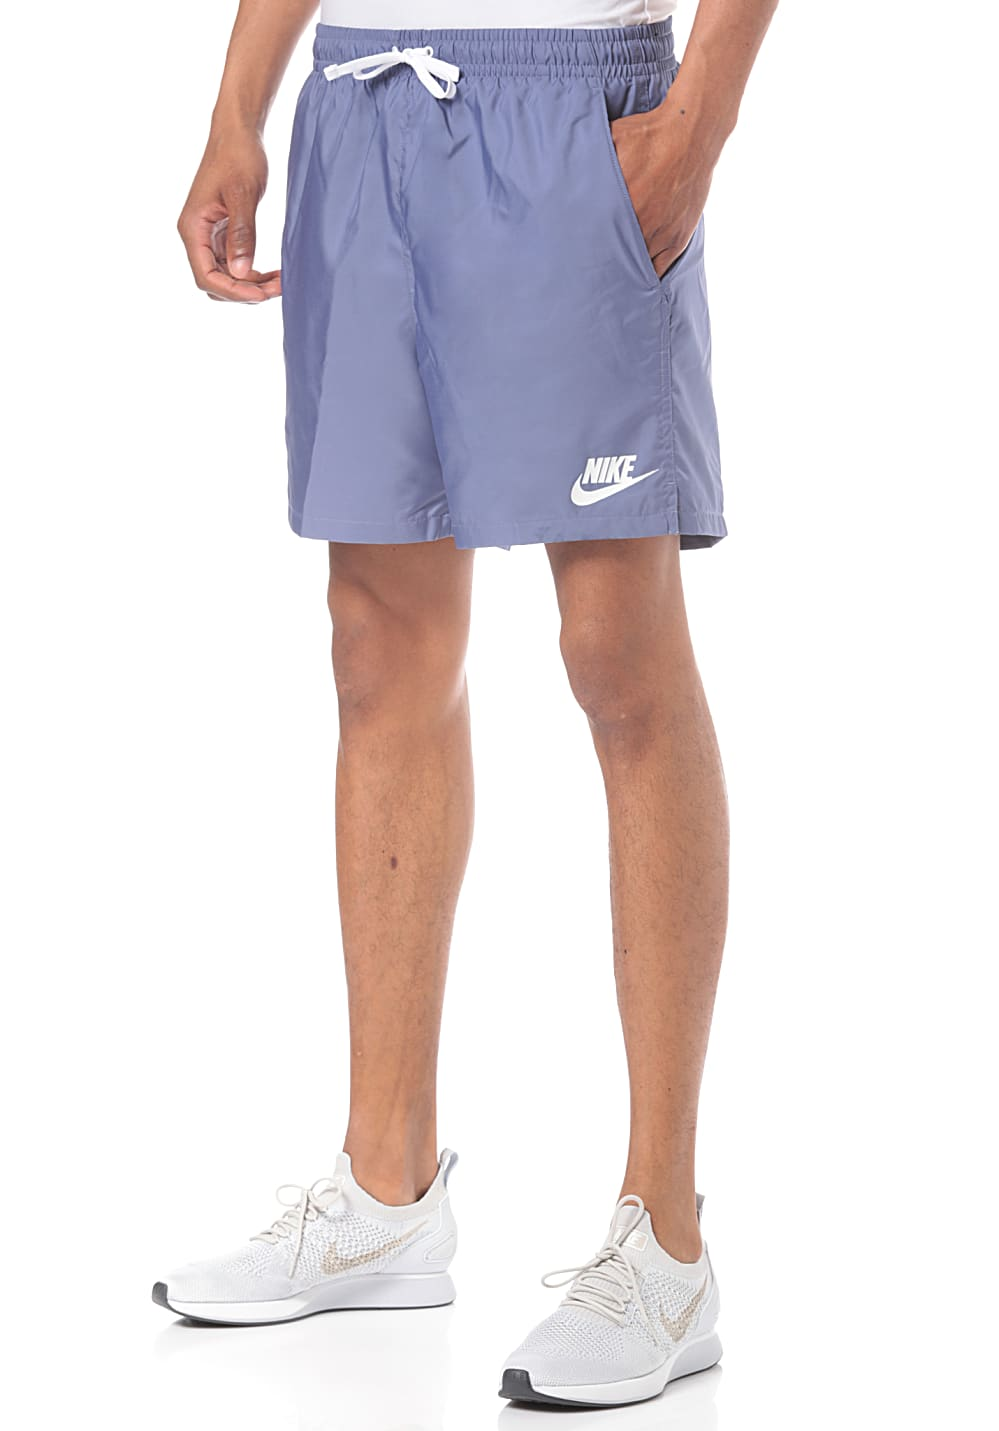 reasonable price latest discount complete in specifications NIKE SPORTSWEAR Woven Flow - Shorts for Men - Grey